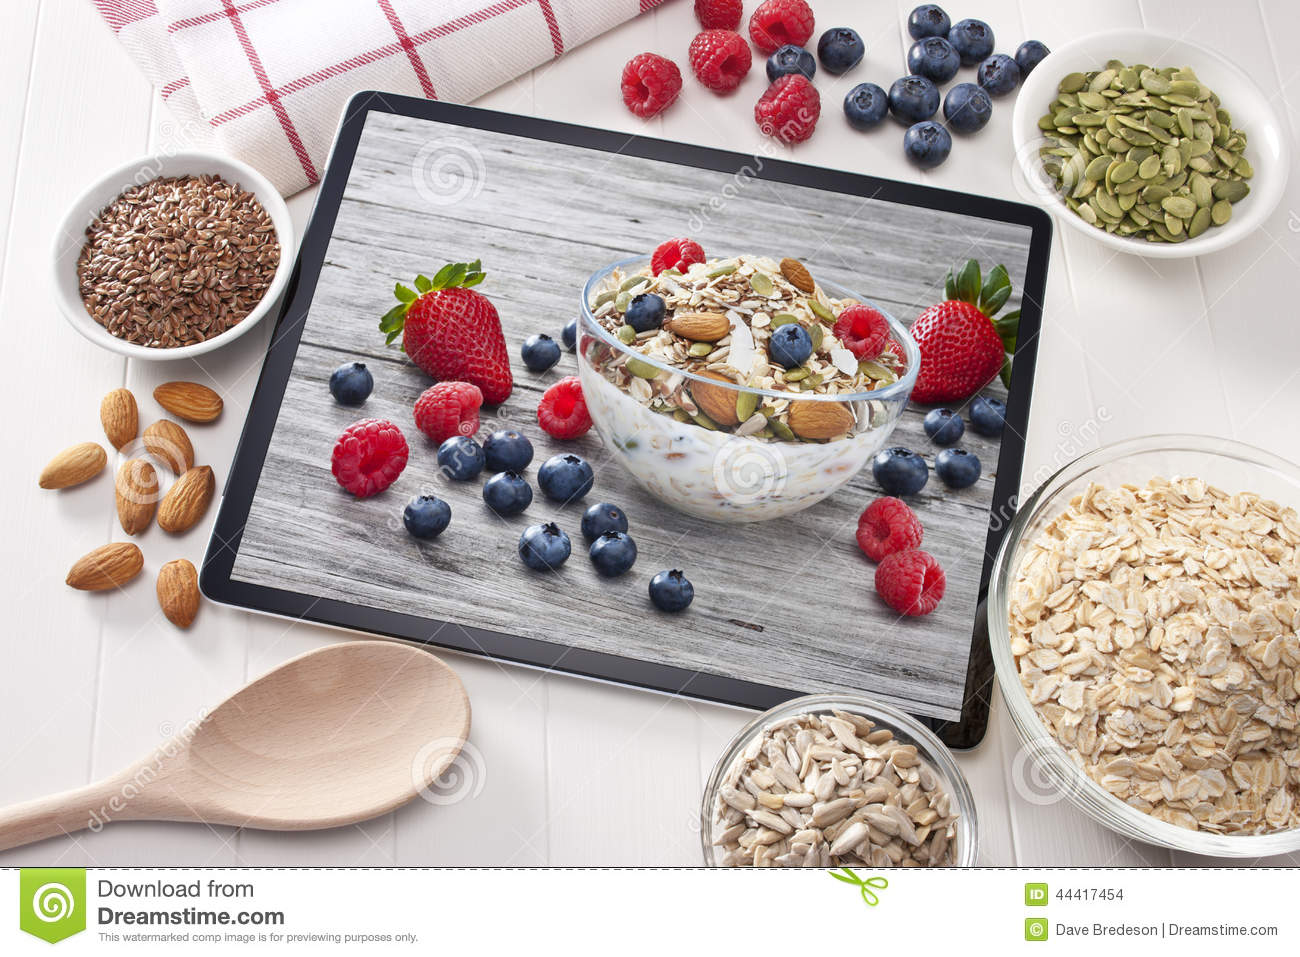 Download Computer Tablet Cereal Berries Nuts Grains Breakfast Stock Photo - Image of breakfast, bowl: 44417454